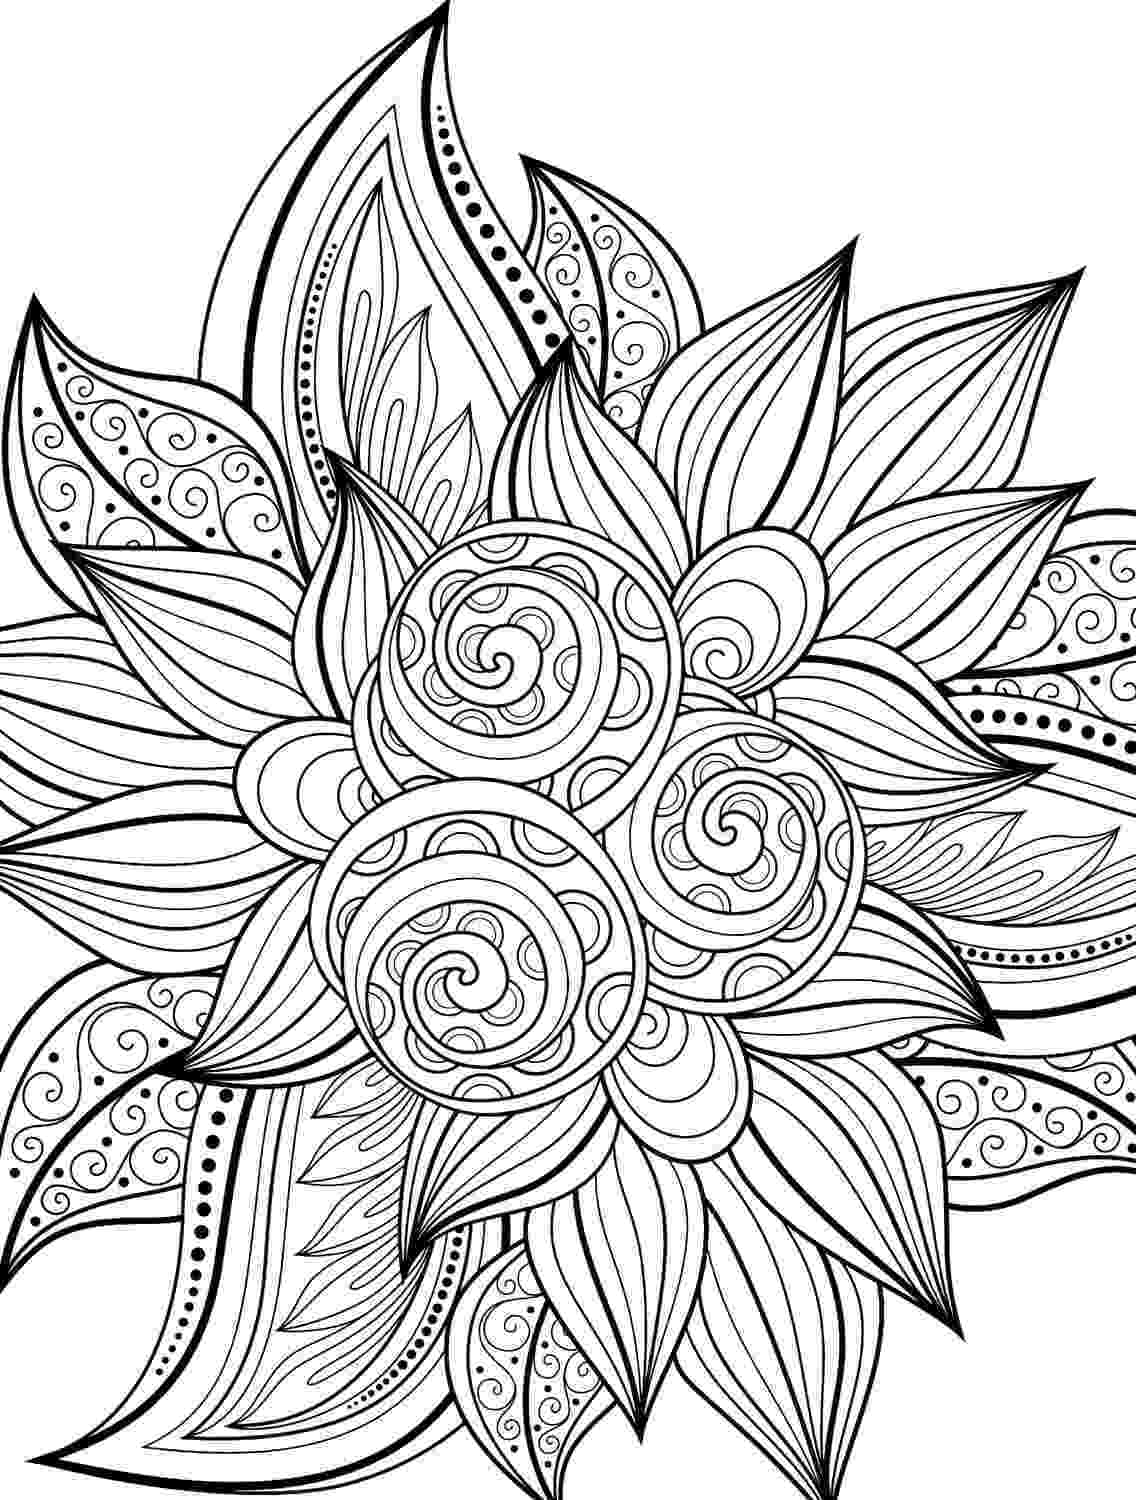 awesome coloring pages for kids coloring pages fascinating color by number coloring pages pages kids coloring awesome for